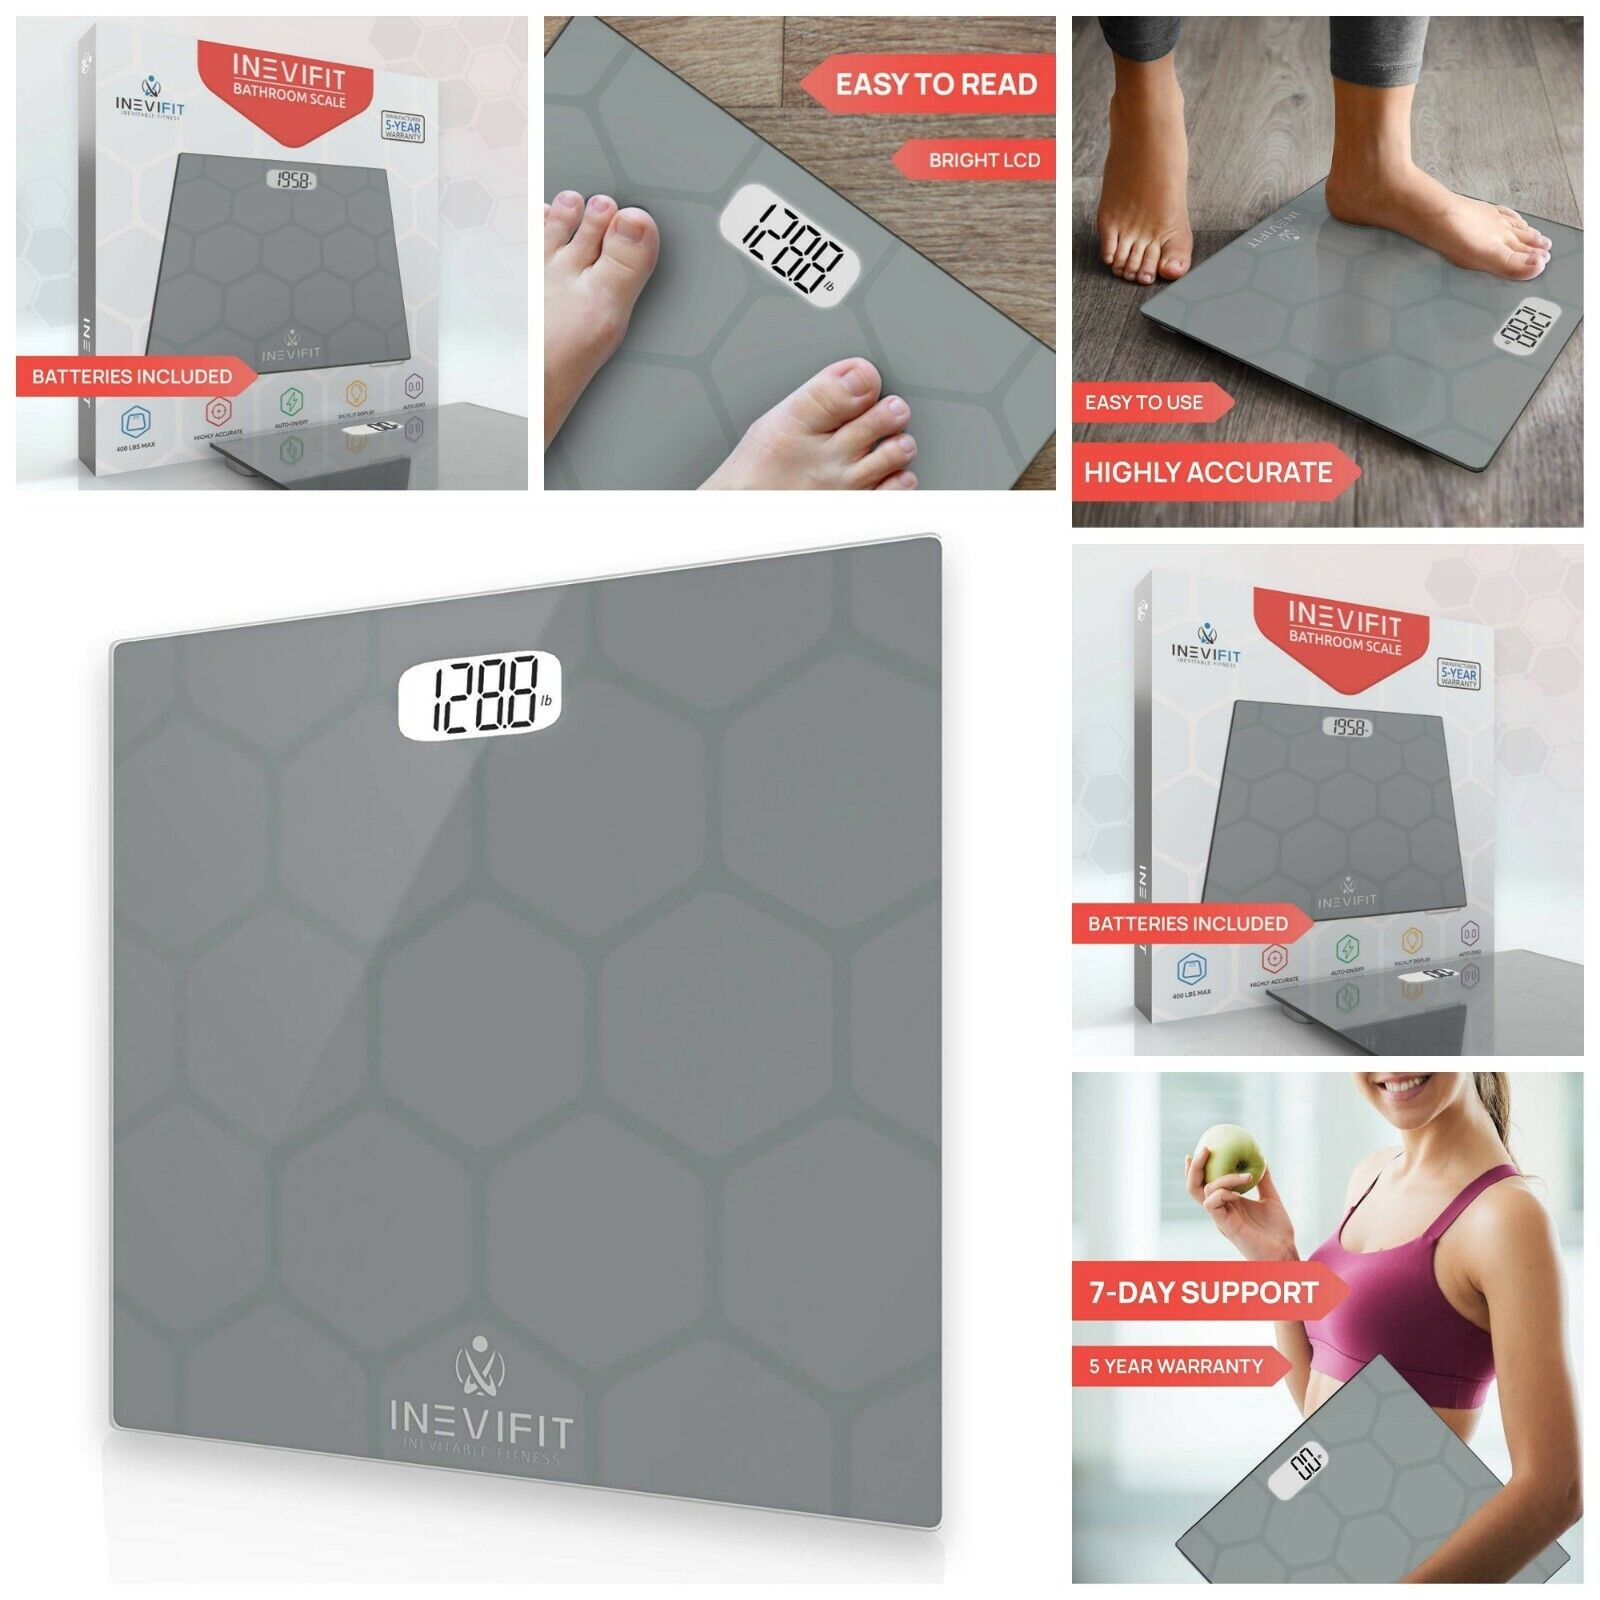 Digital Bathroom Body Scale Highly Accurate Tempered Glass Weight Up To 400 lbs.